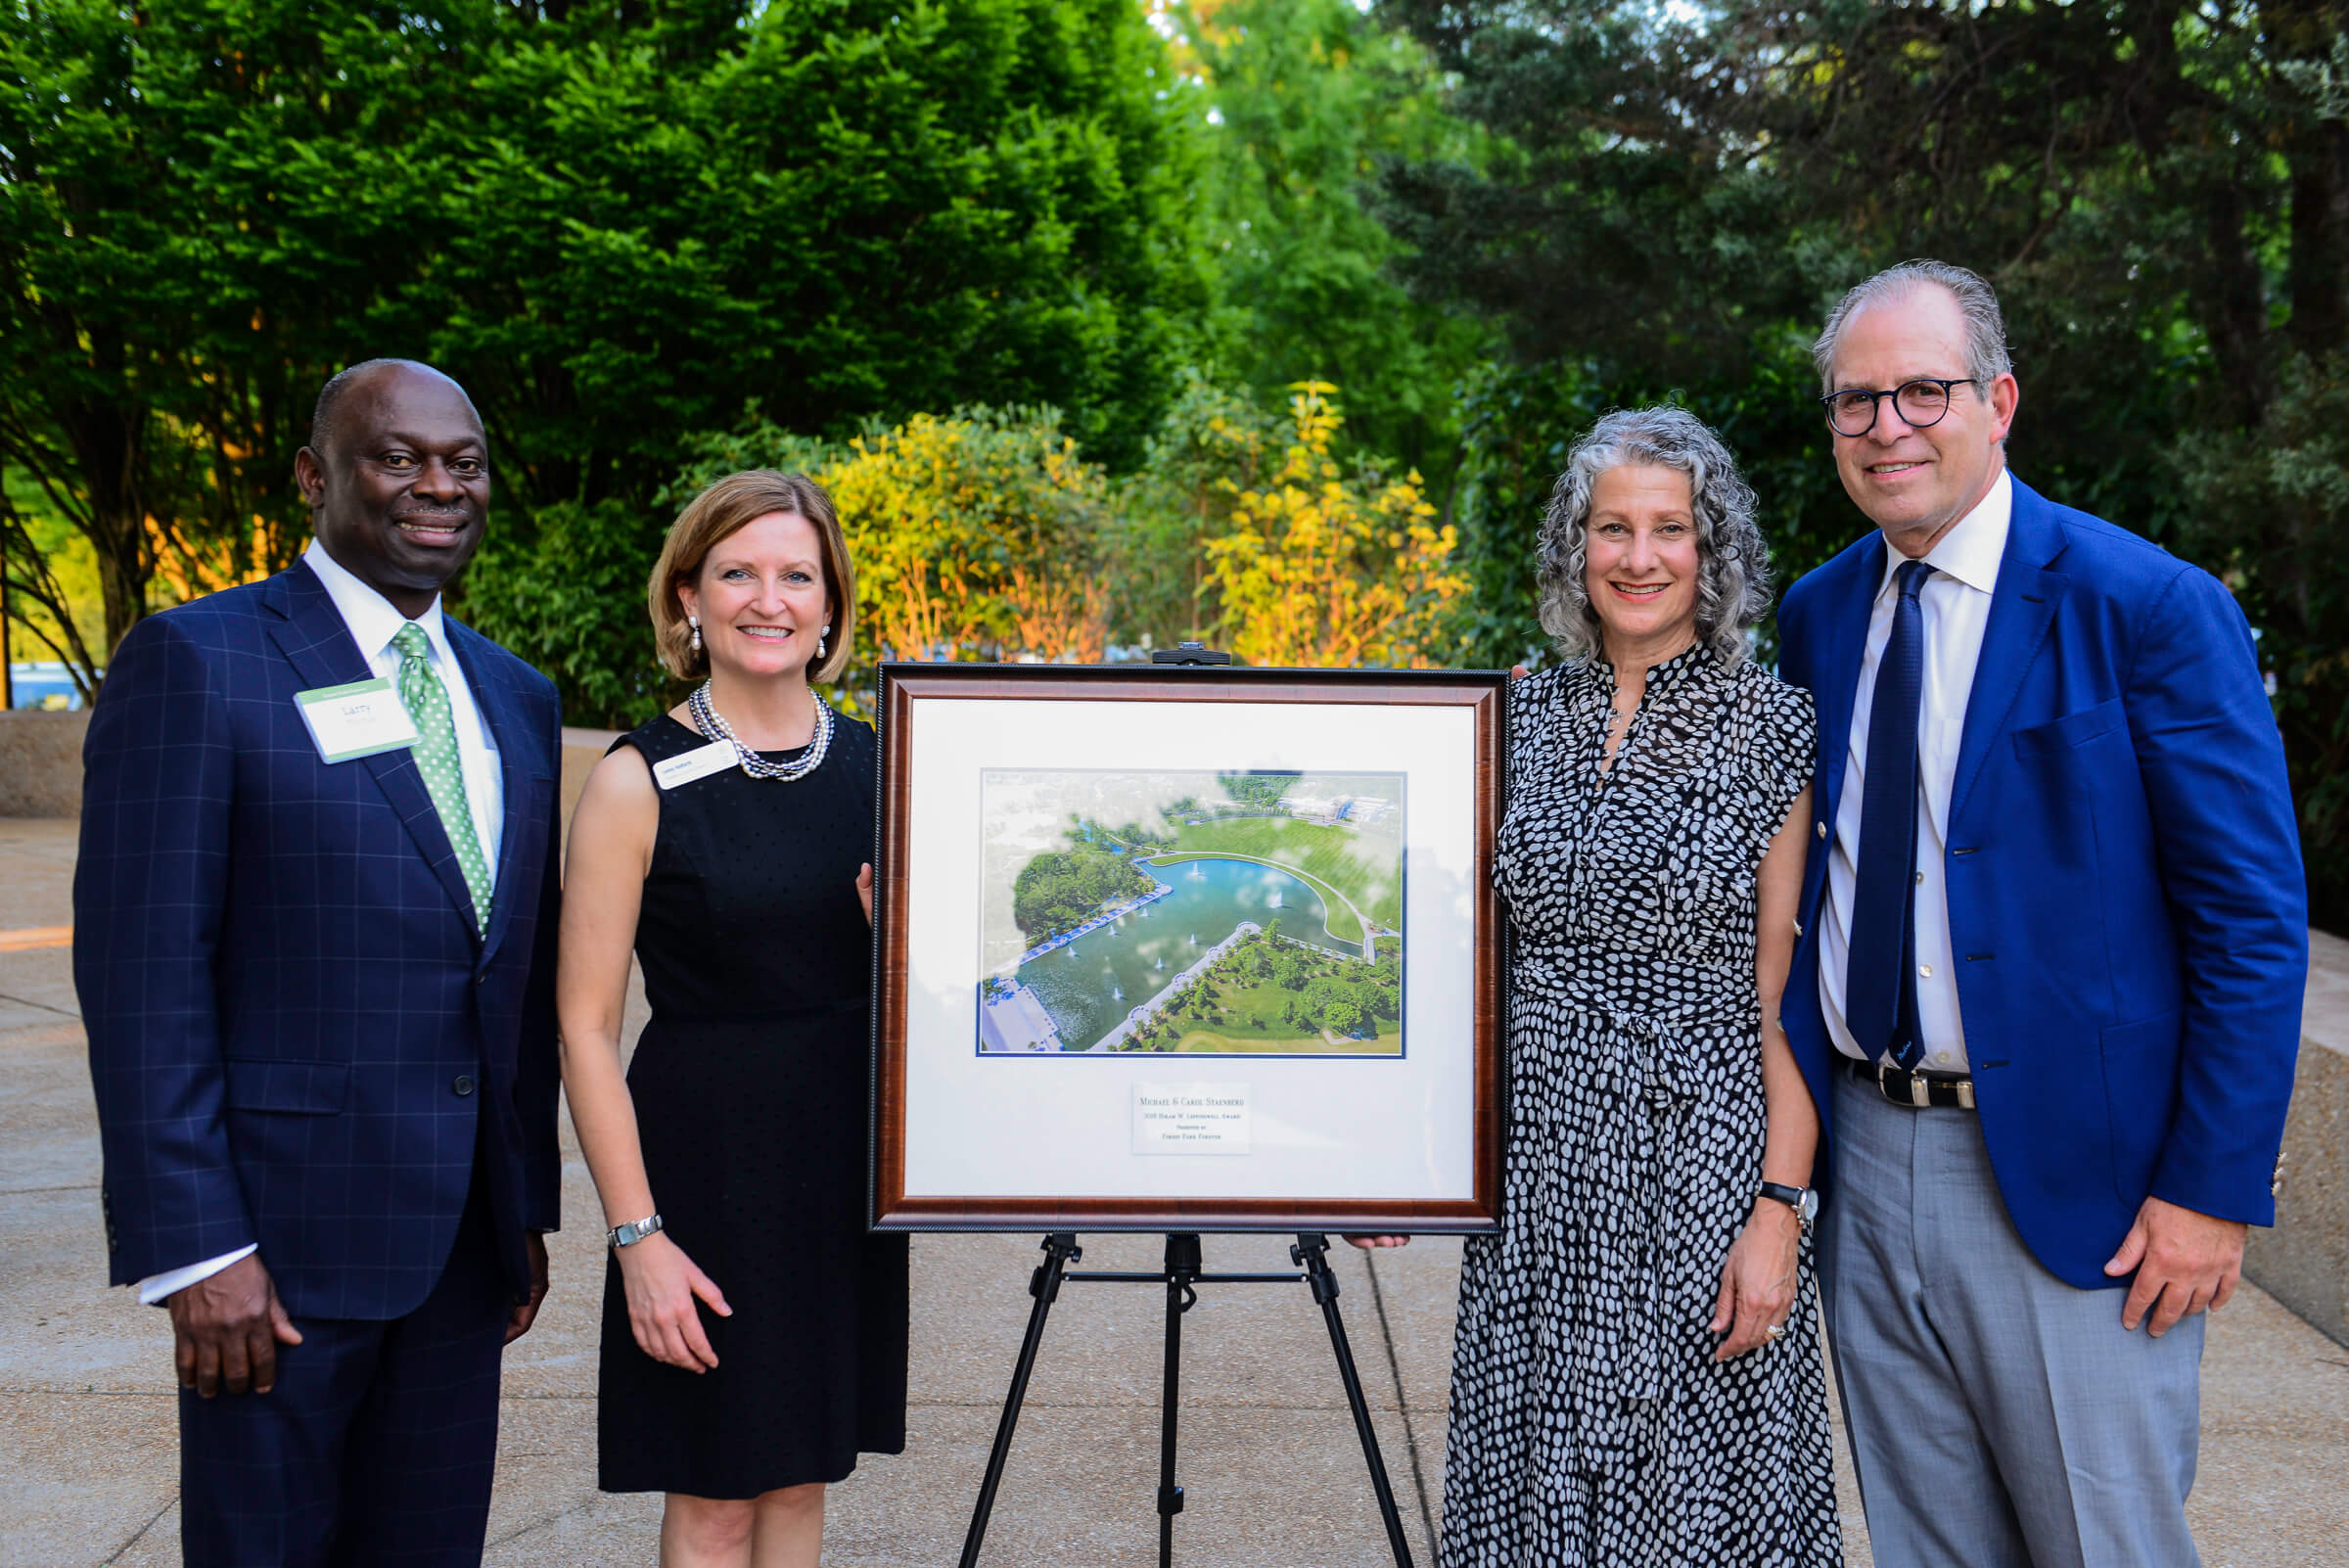 Pictured: Forest Park Forever Board Chair Larry Thomas, Forest Park Forever President and Executive Director Lesley S. Hoffarth, P.E., Carol and Michael Staenberg